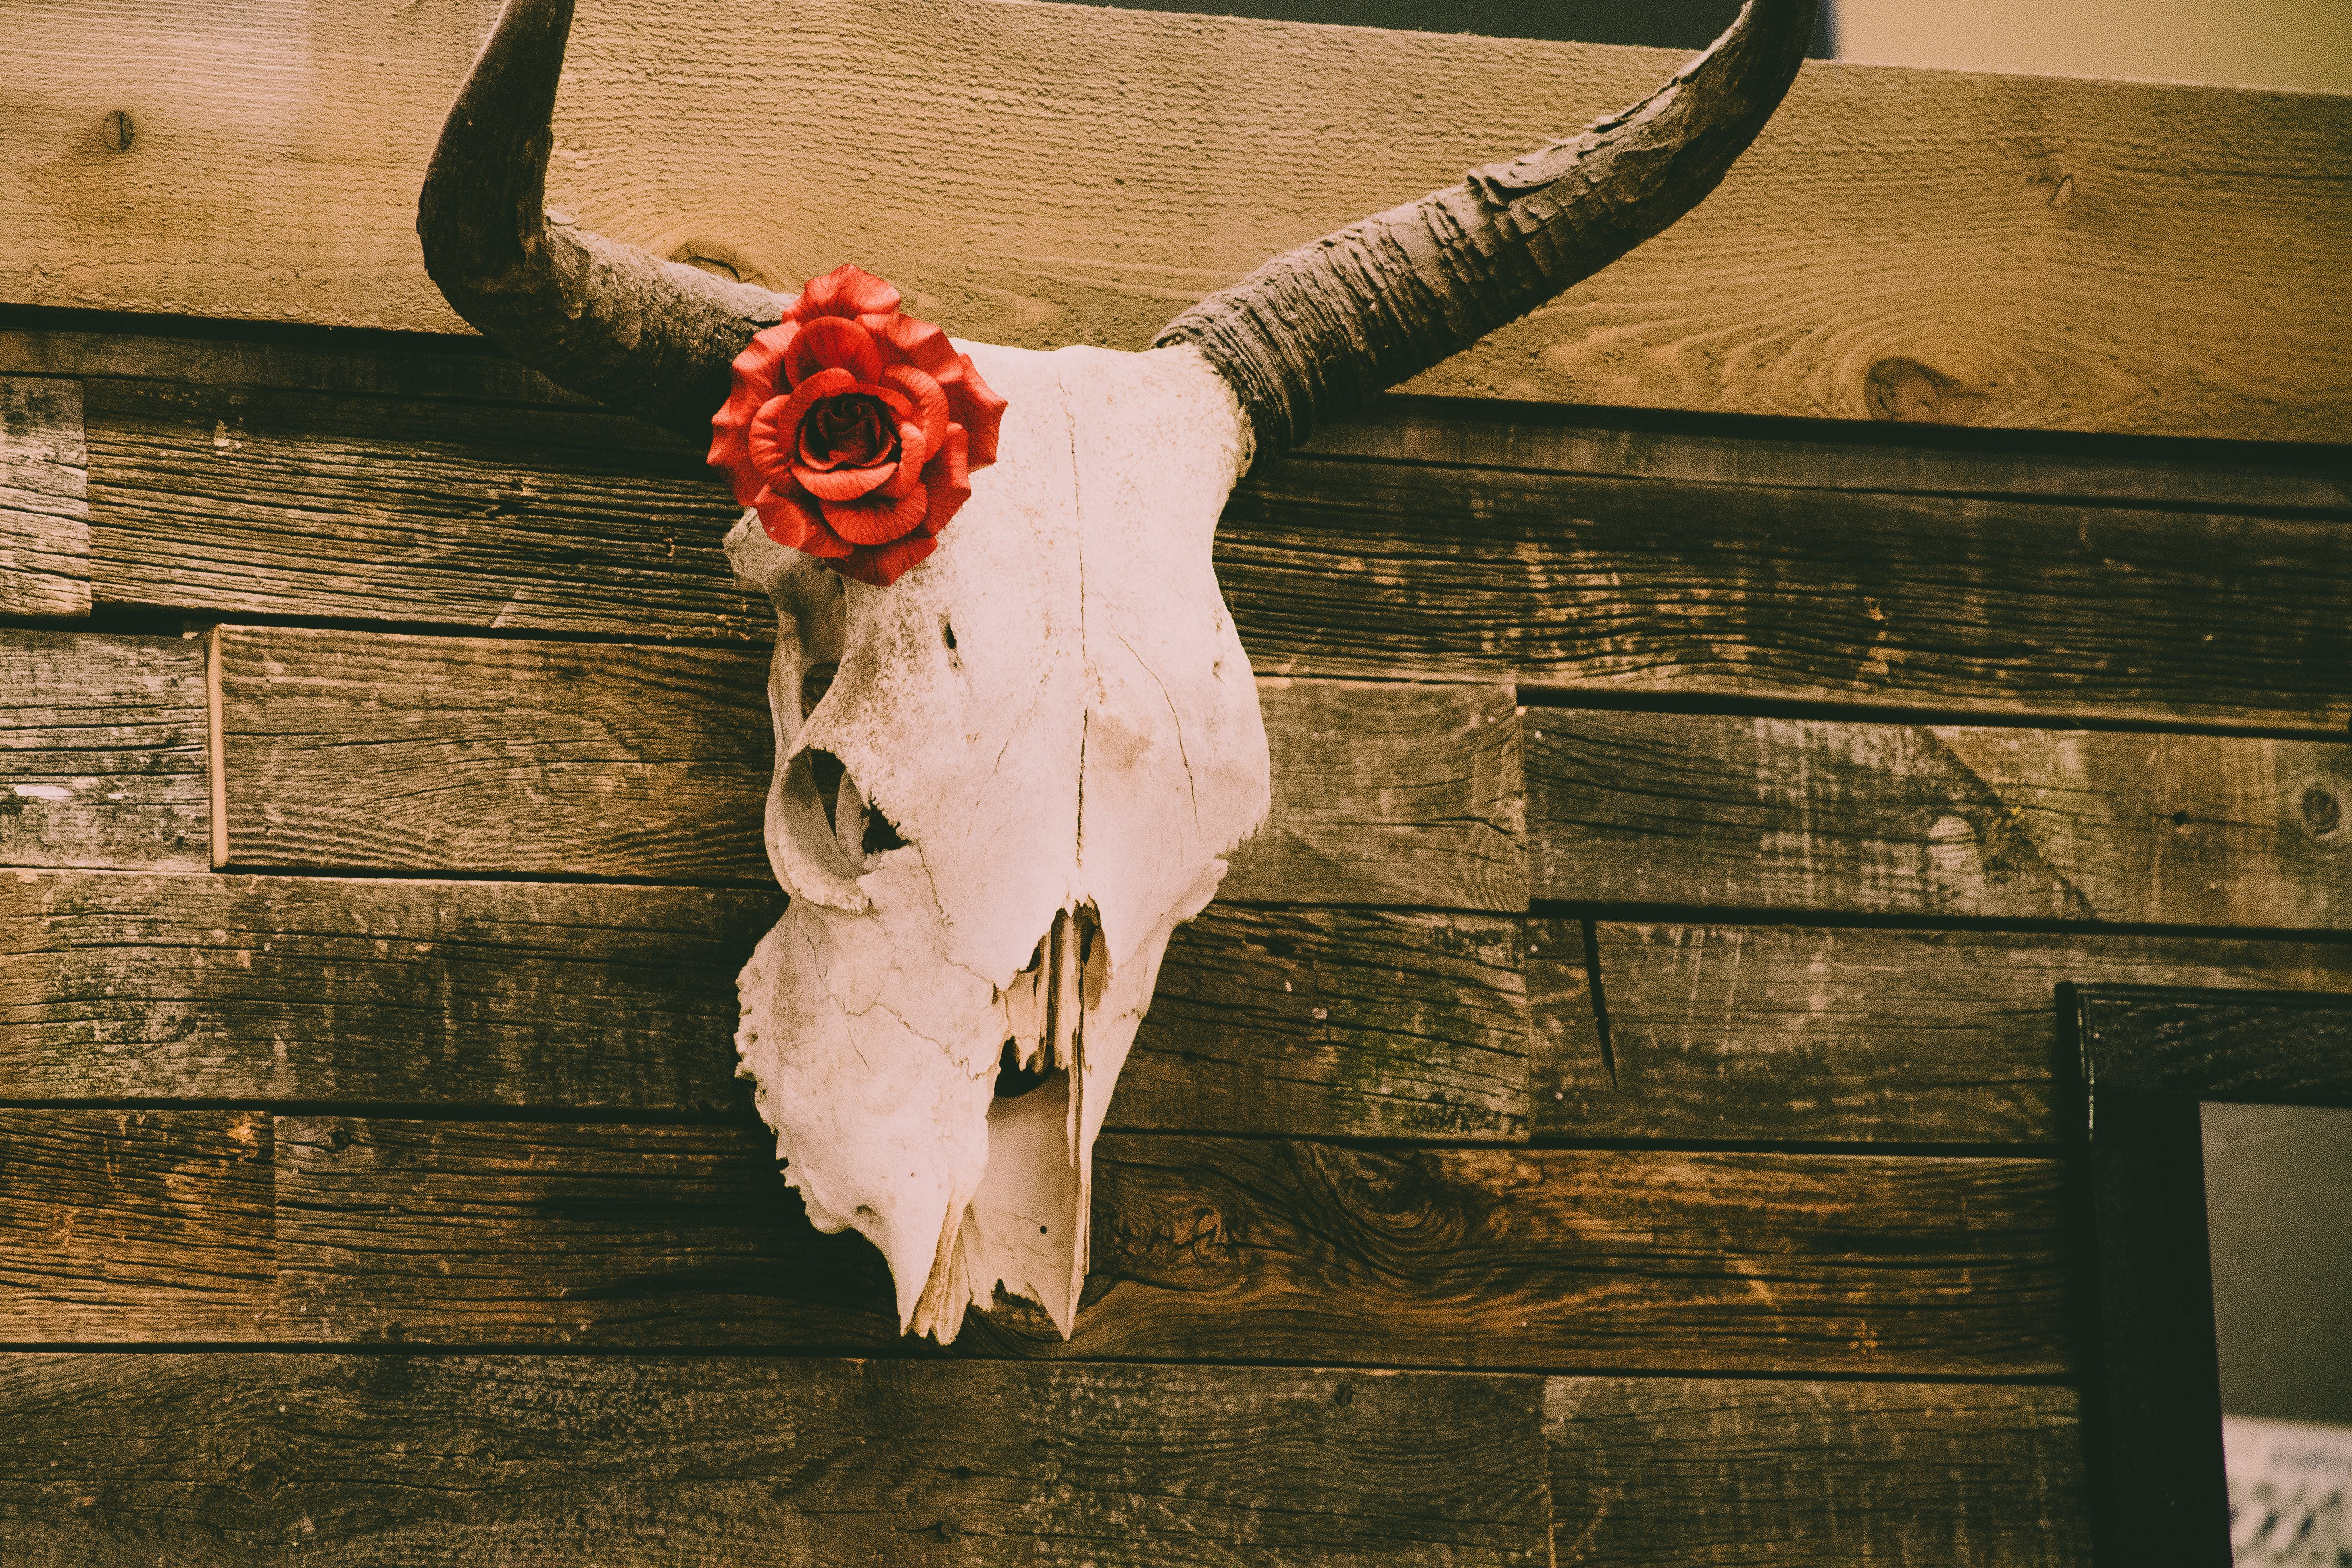 Animal Skull on Wall With Red Rose Decor